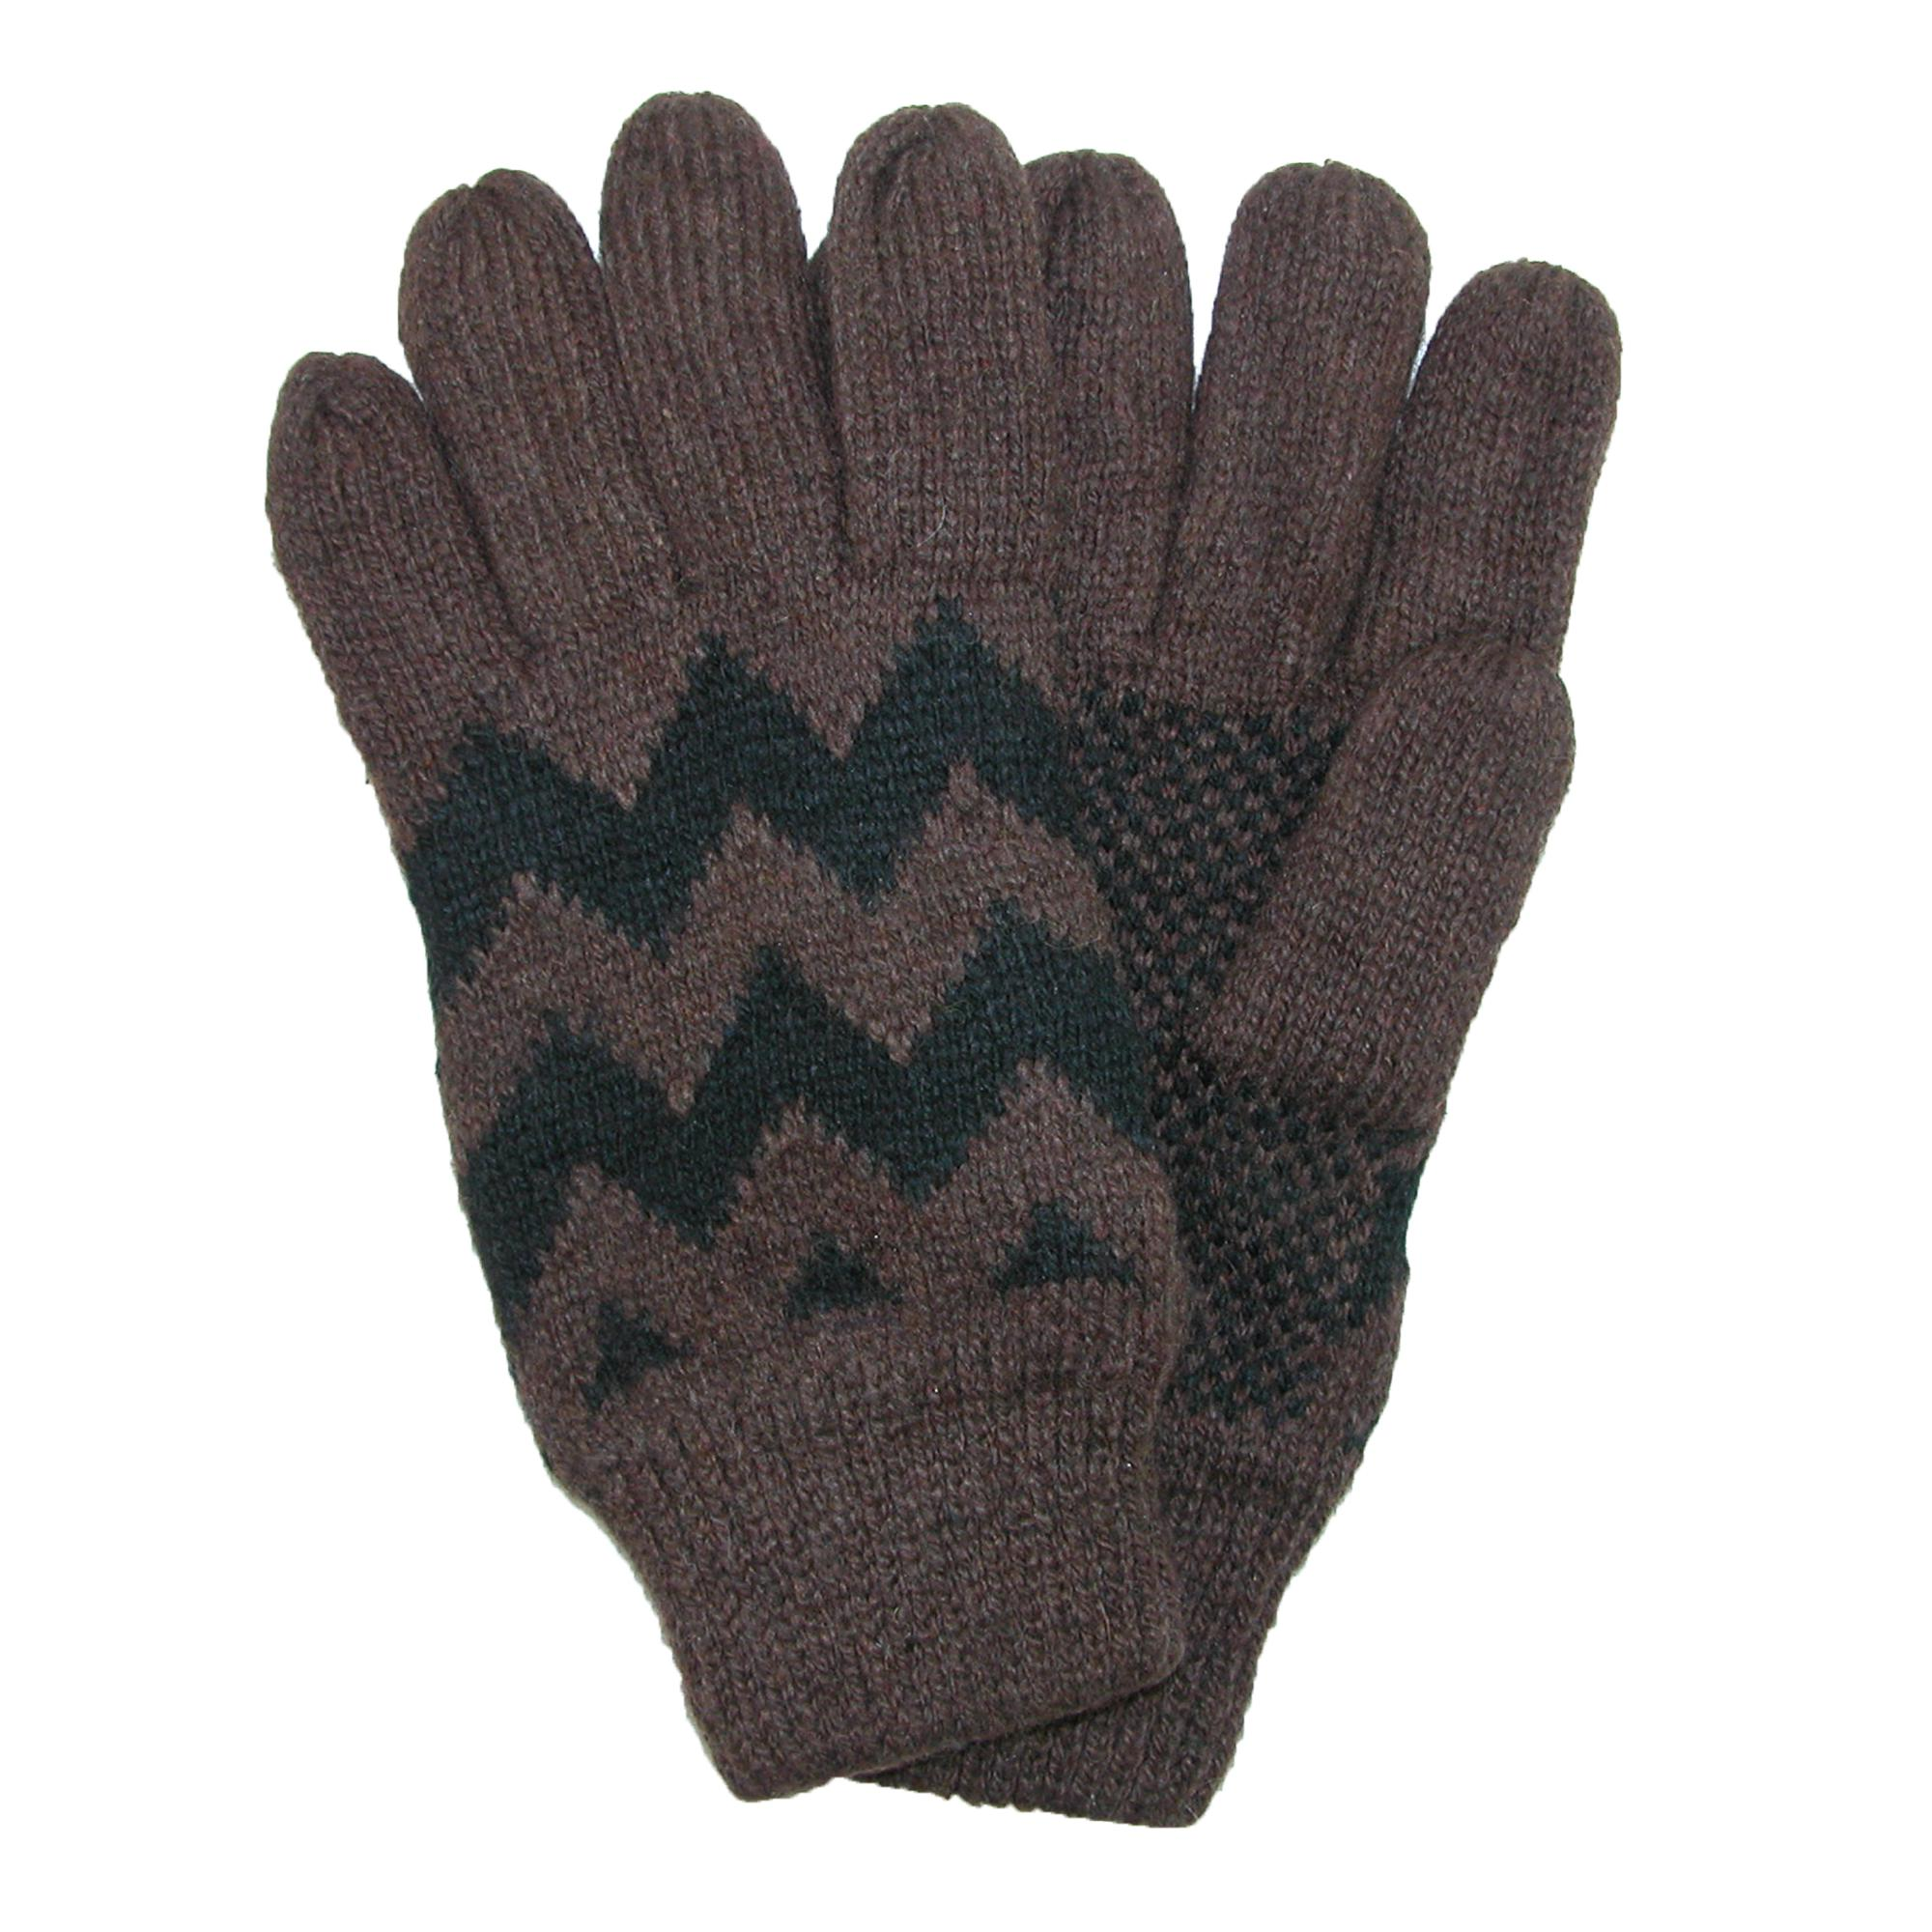 Ctm Mens Fleece Lined Knit Gloves With Zig Zag